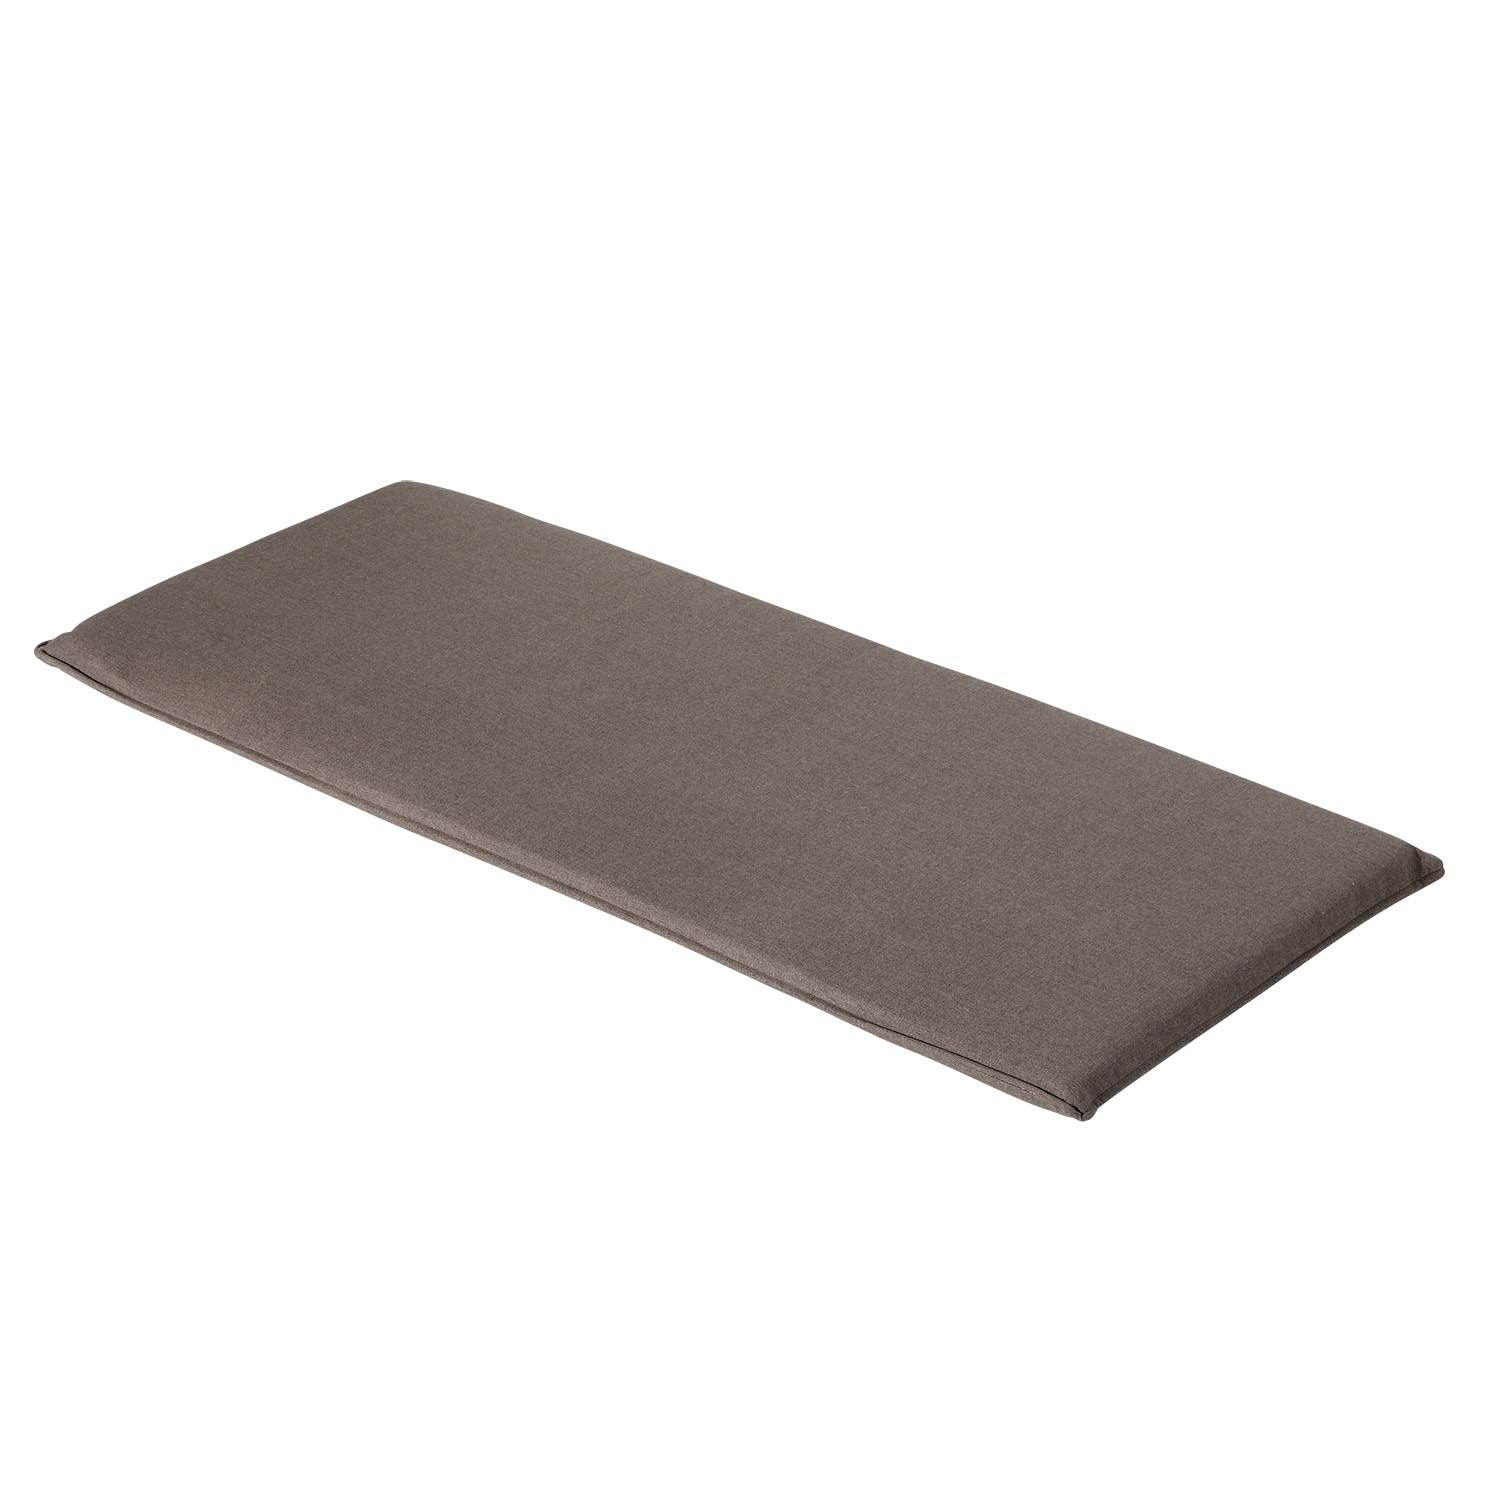 Auflage Bank 110cm - Outdoor Oxford taupe